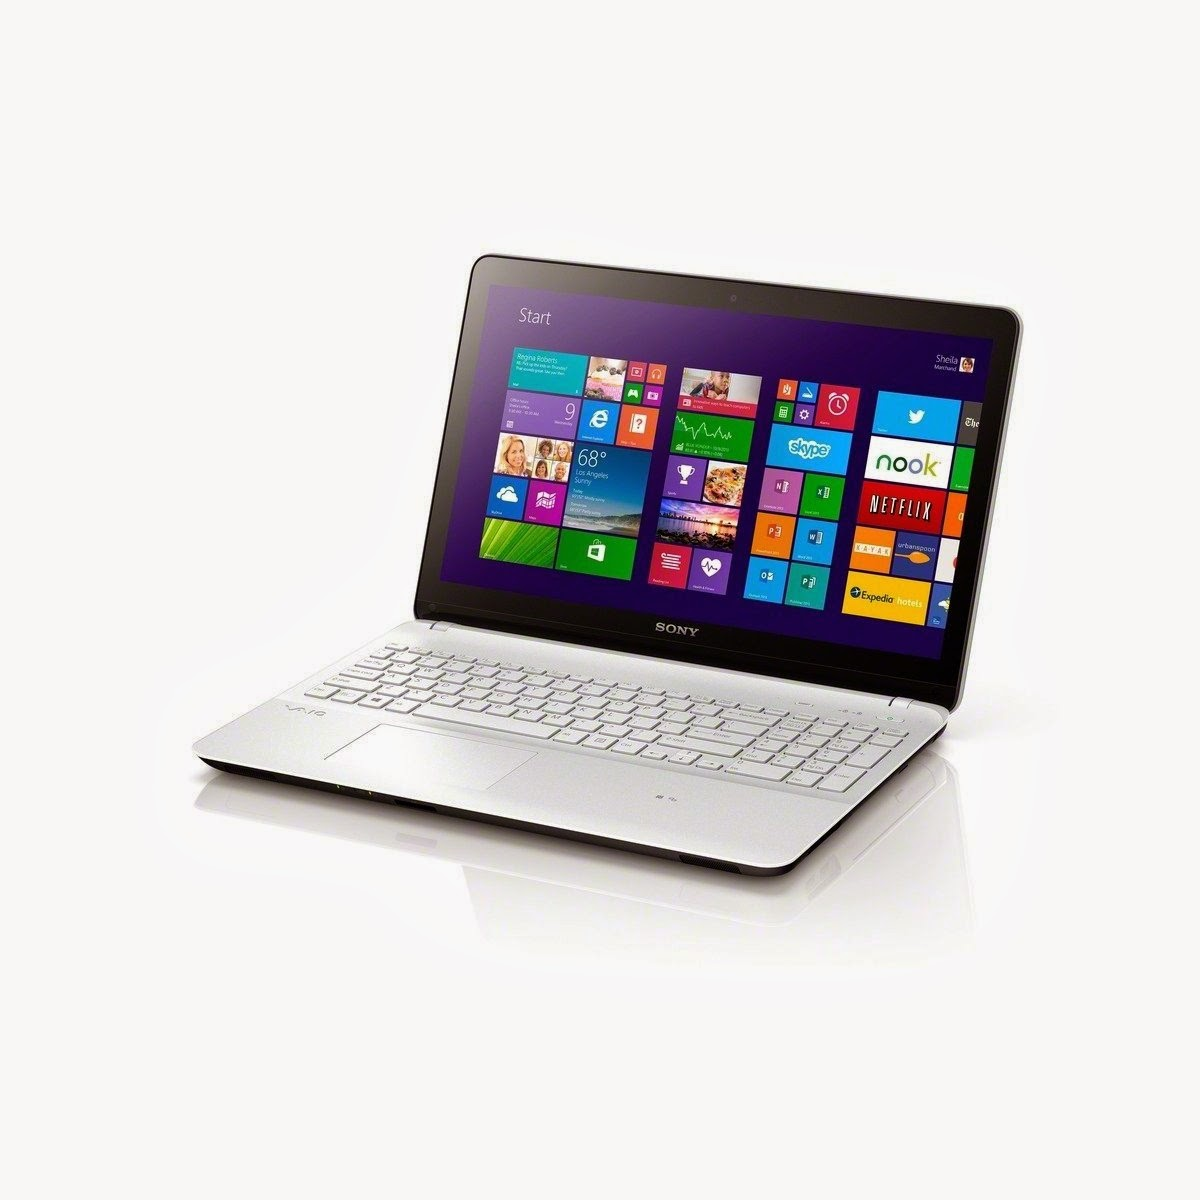 sony vaio drivers for windows 7 professional 64 bit free download